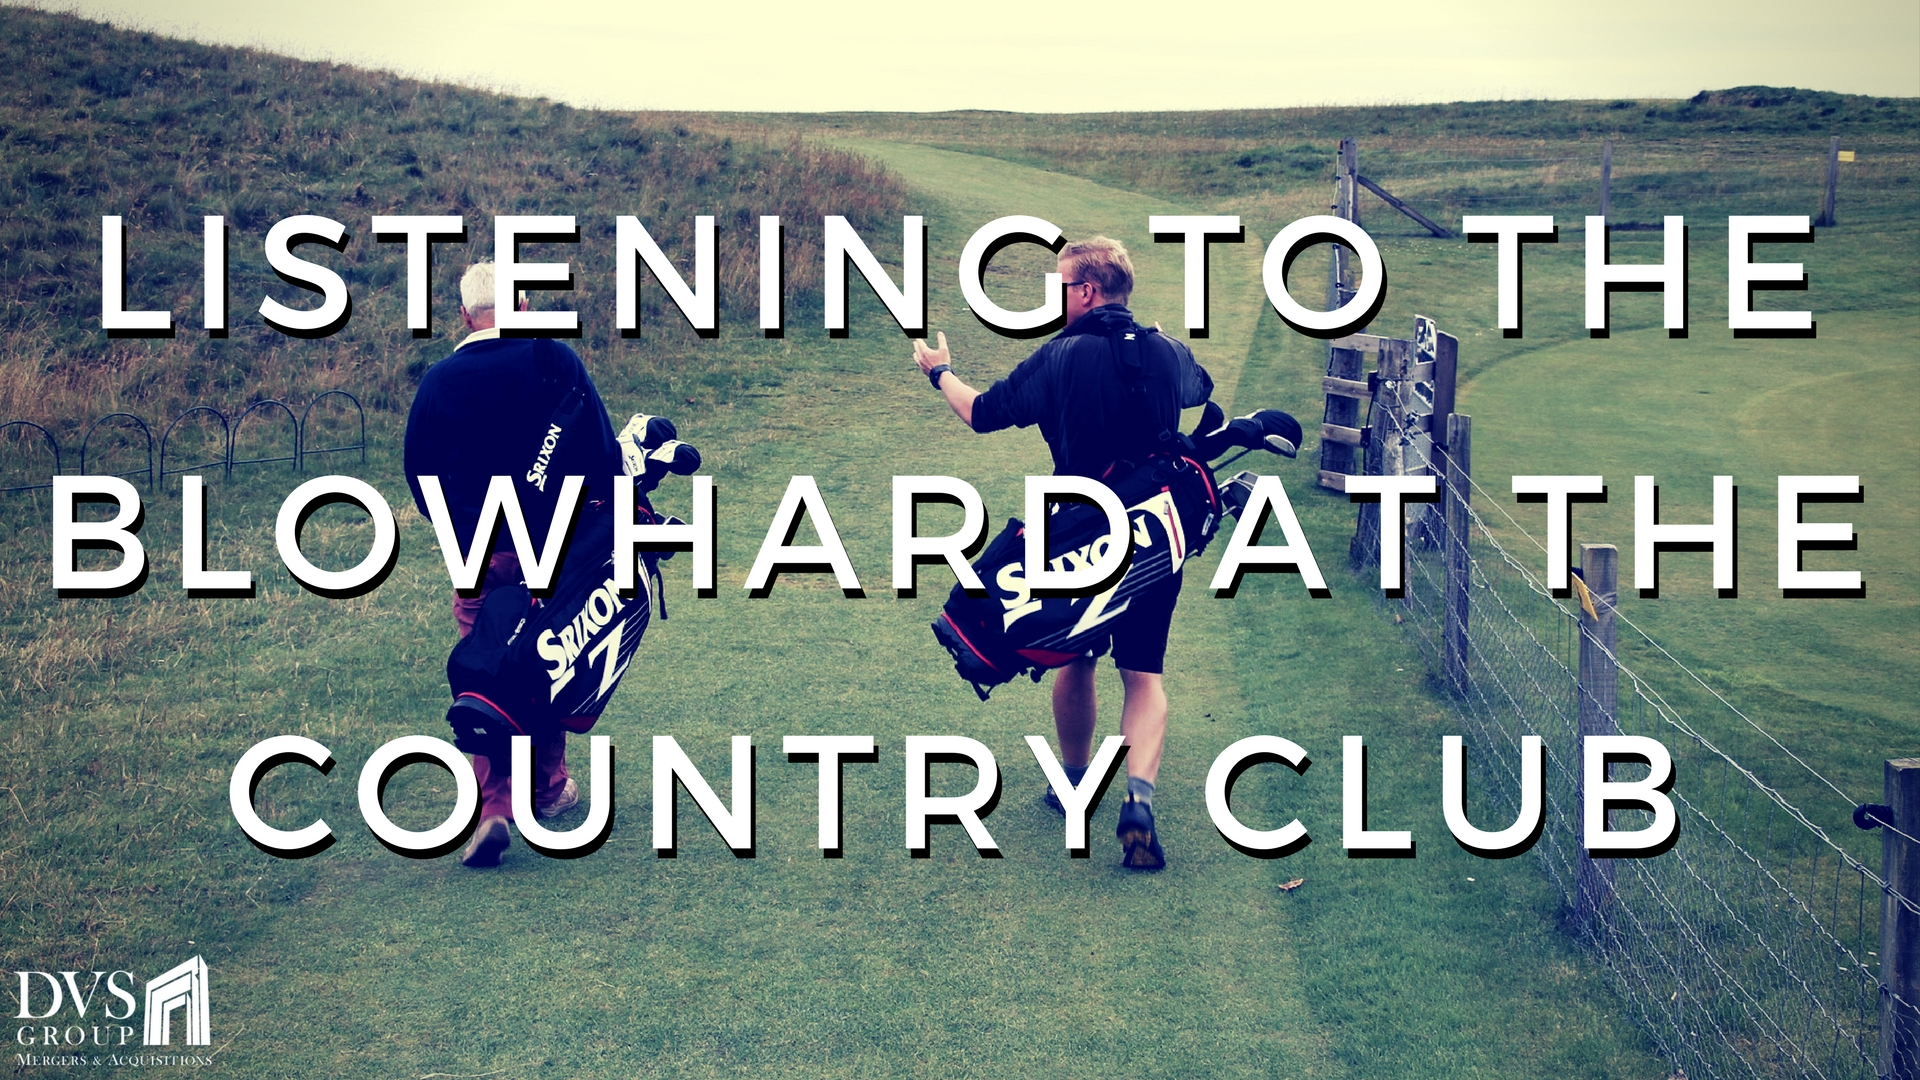 Listening to the Blowhard at the Country Club